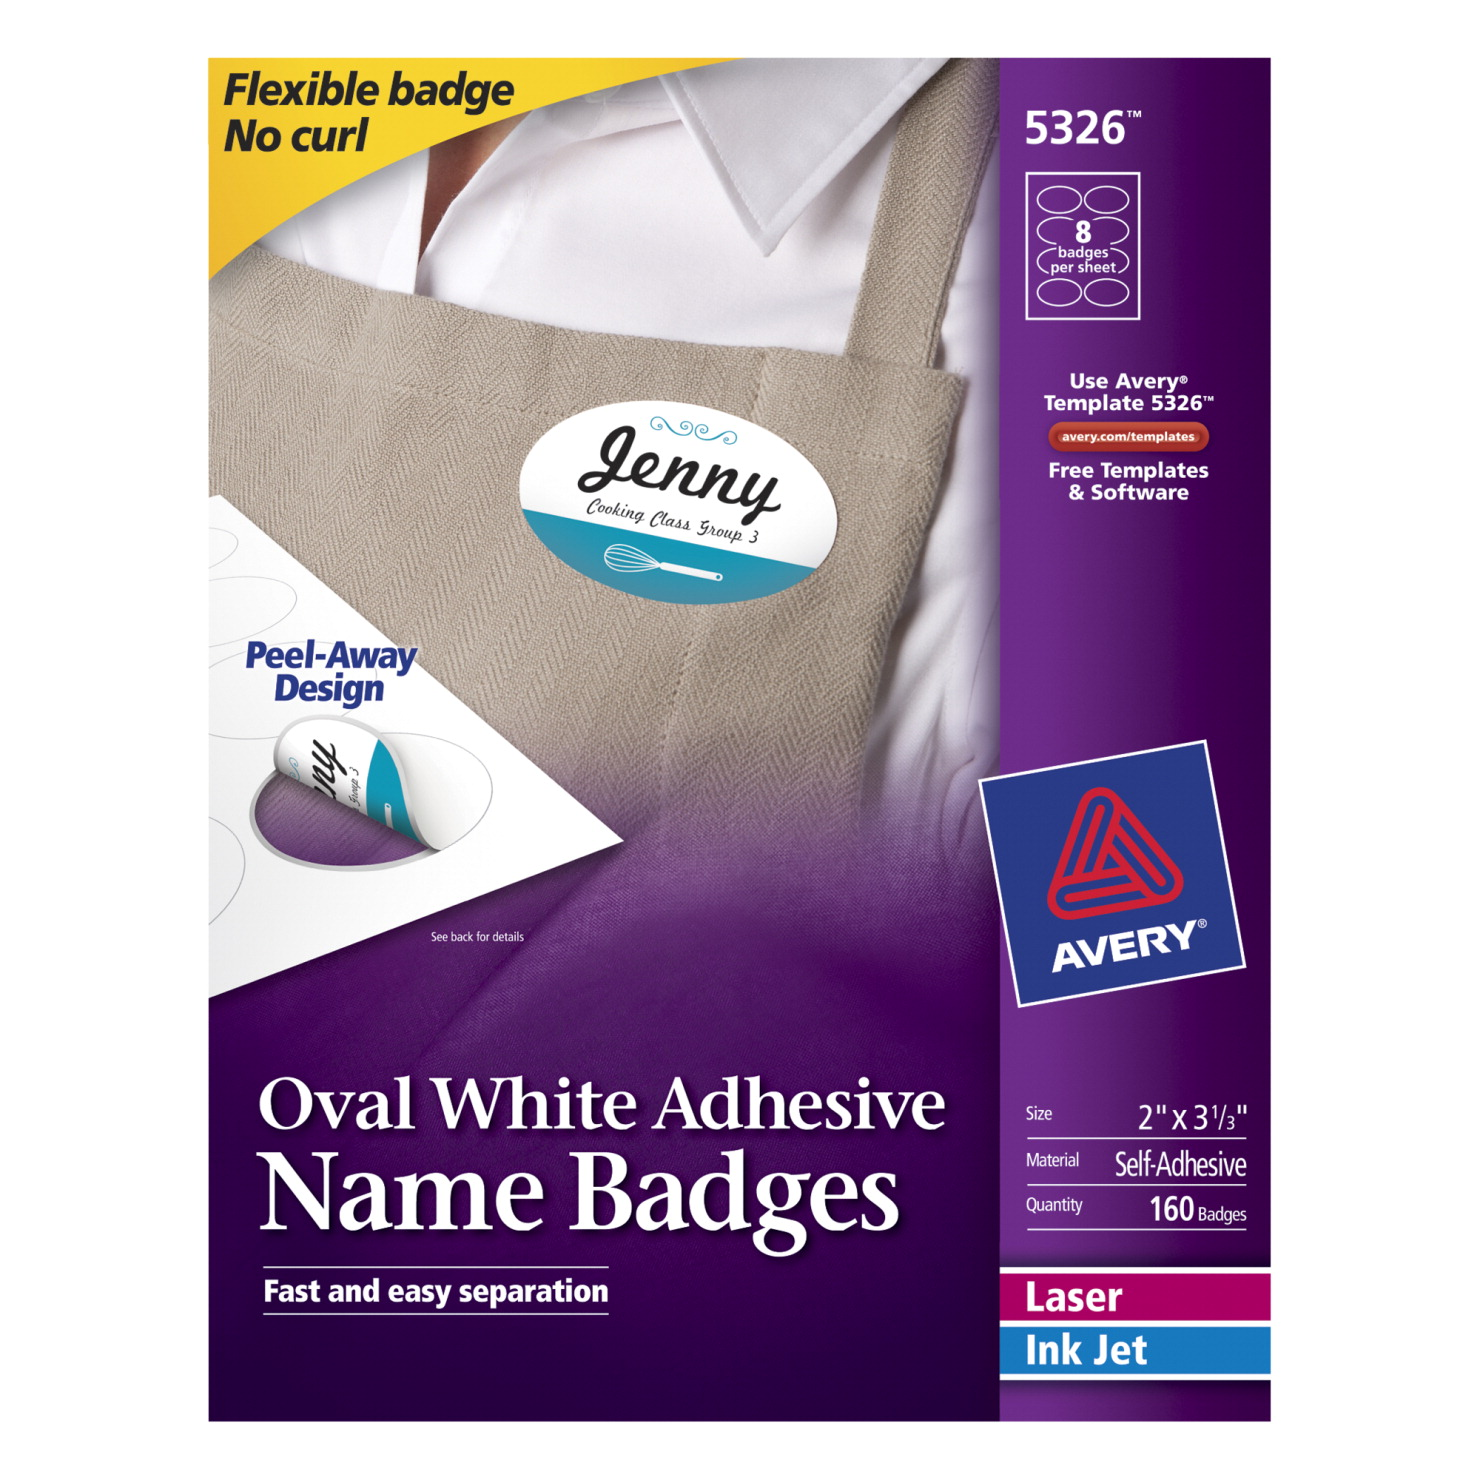 avery 5326 adhesive name badge labels white school specialty